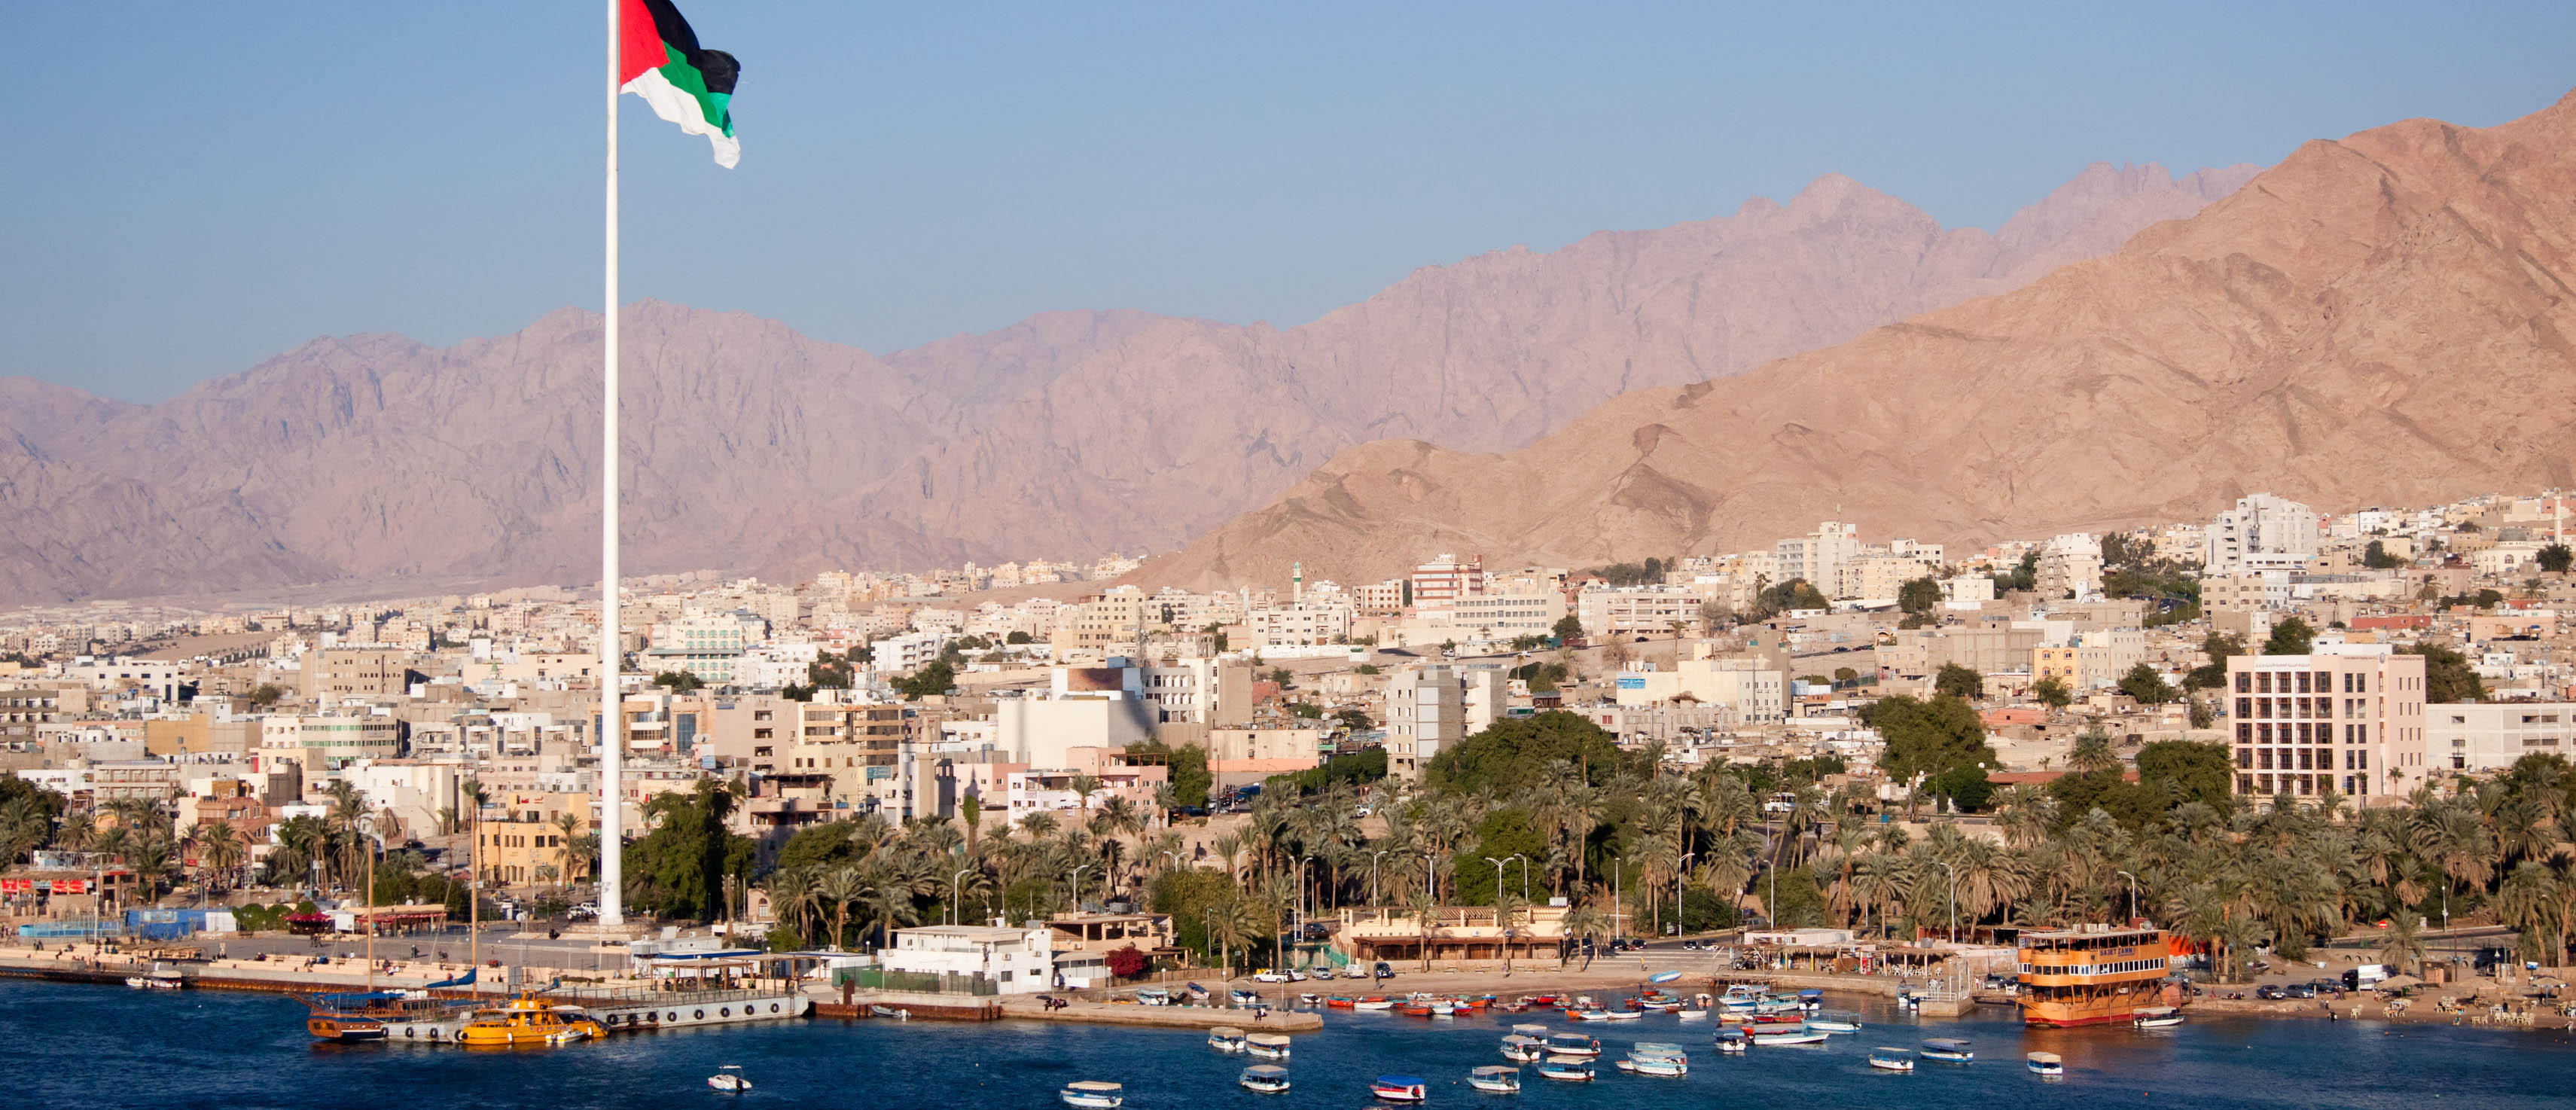 easyJet takes you to the diver's paradise of Aqaba